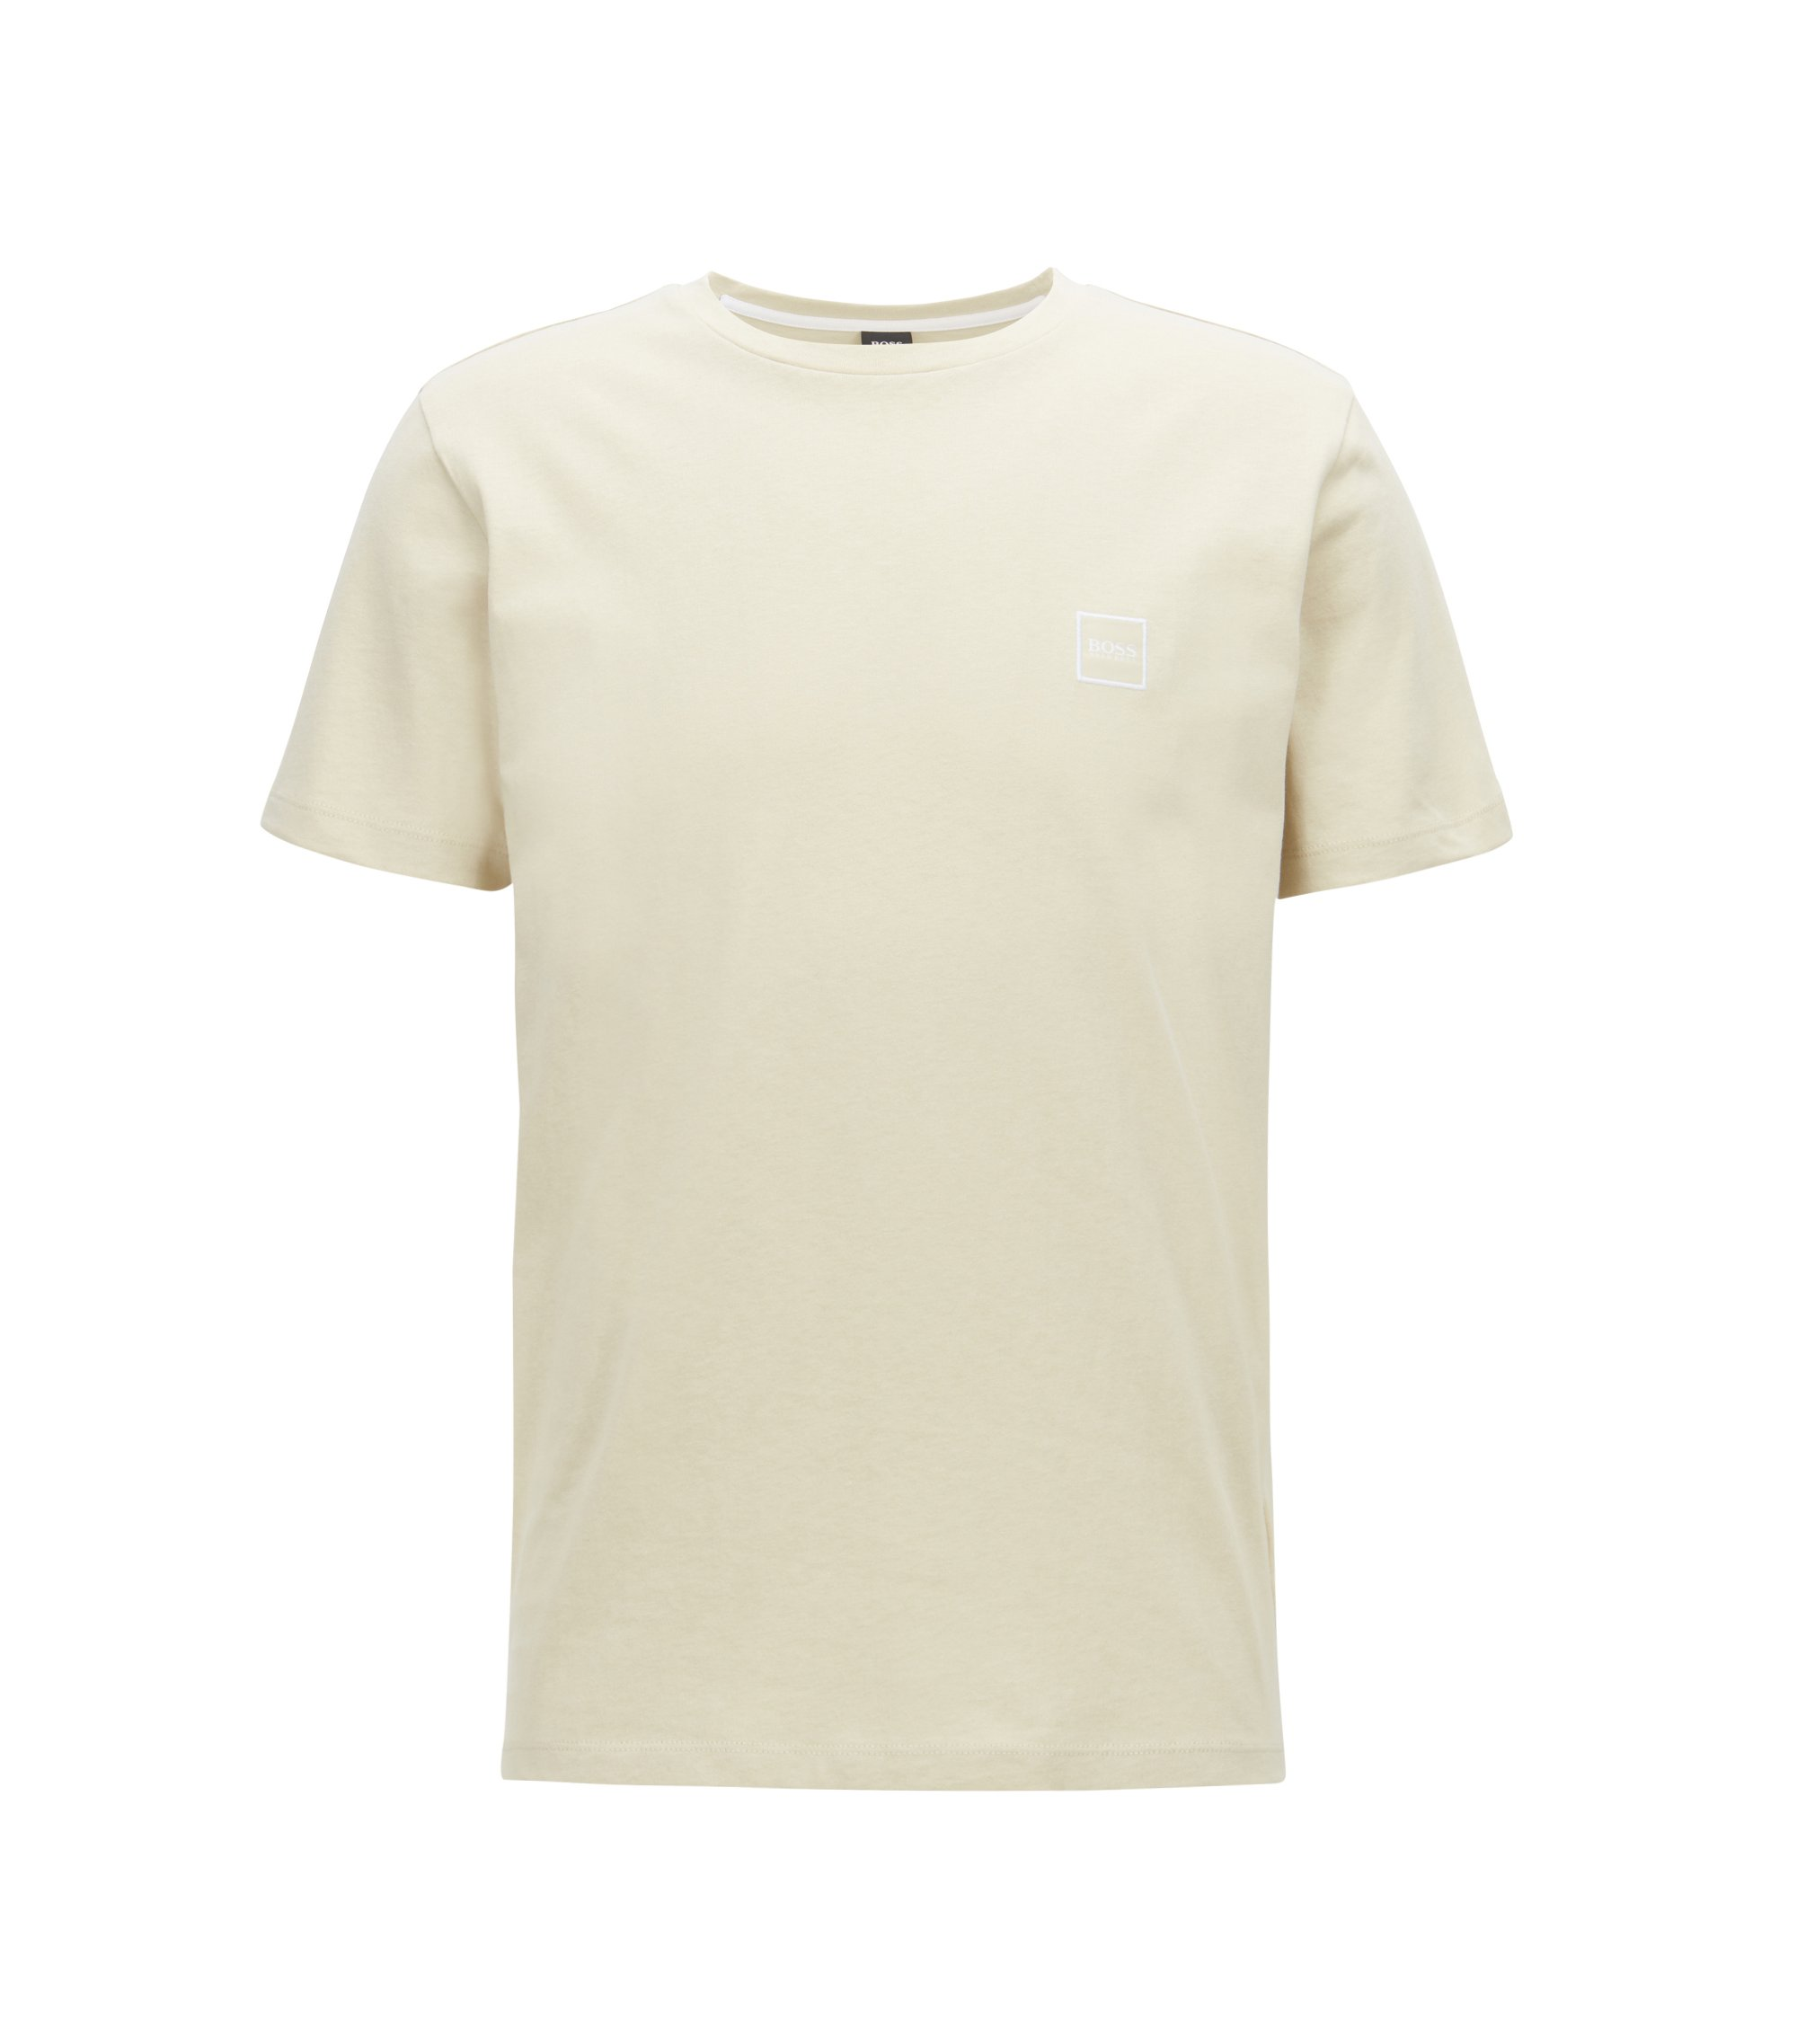 Crew-neck T-shirt in single-jersey cotton, Beige